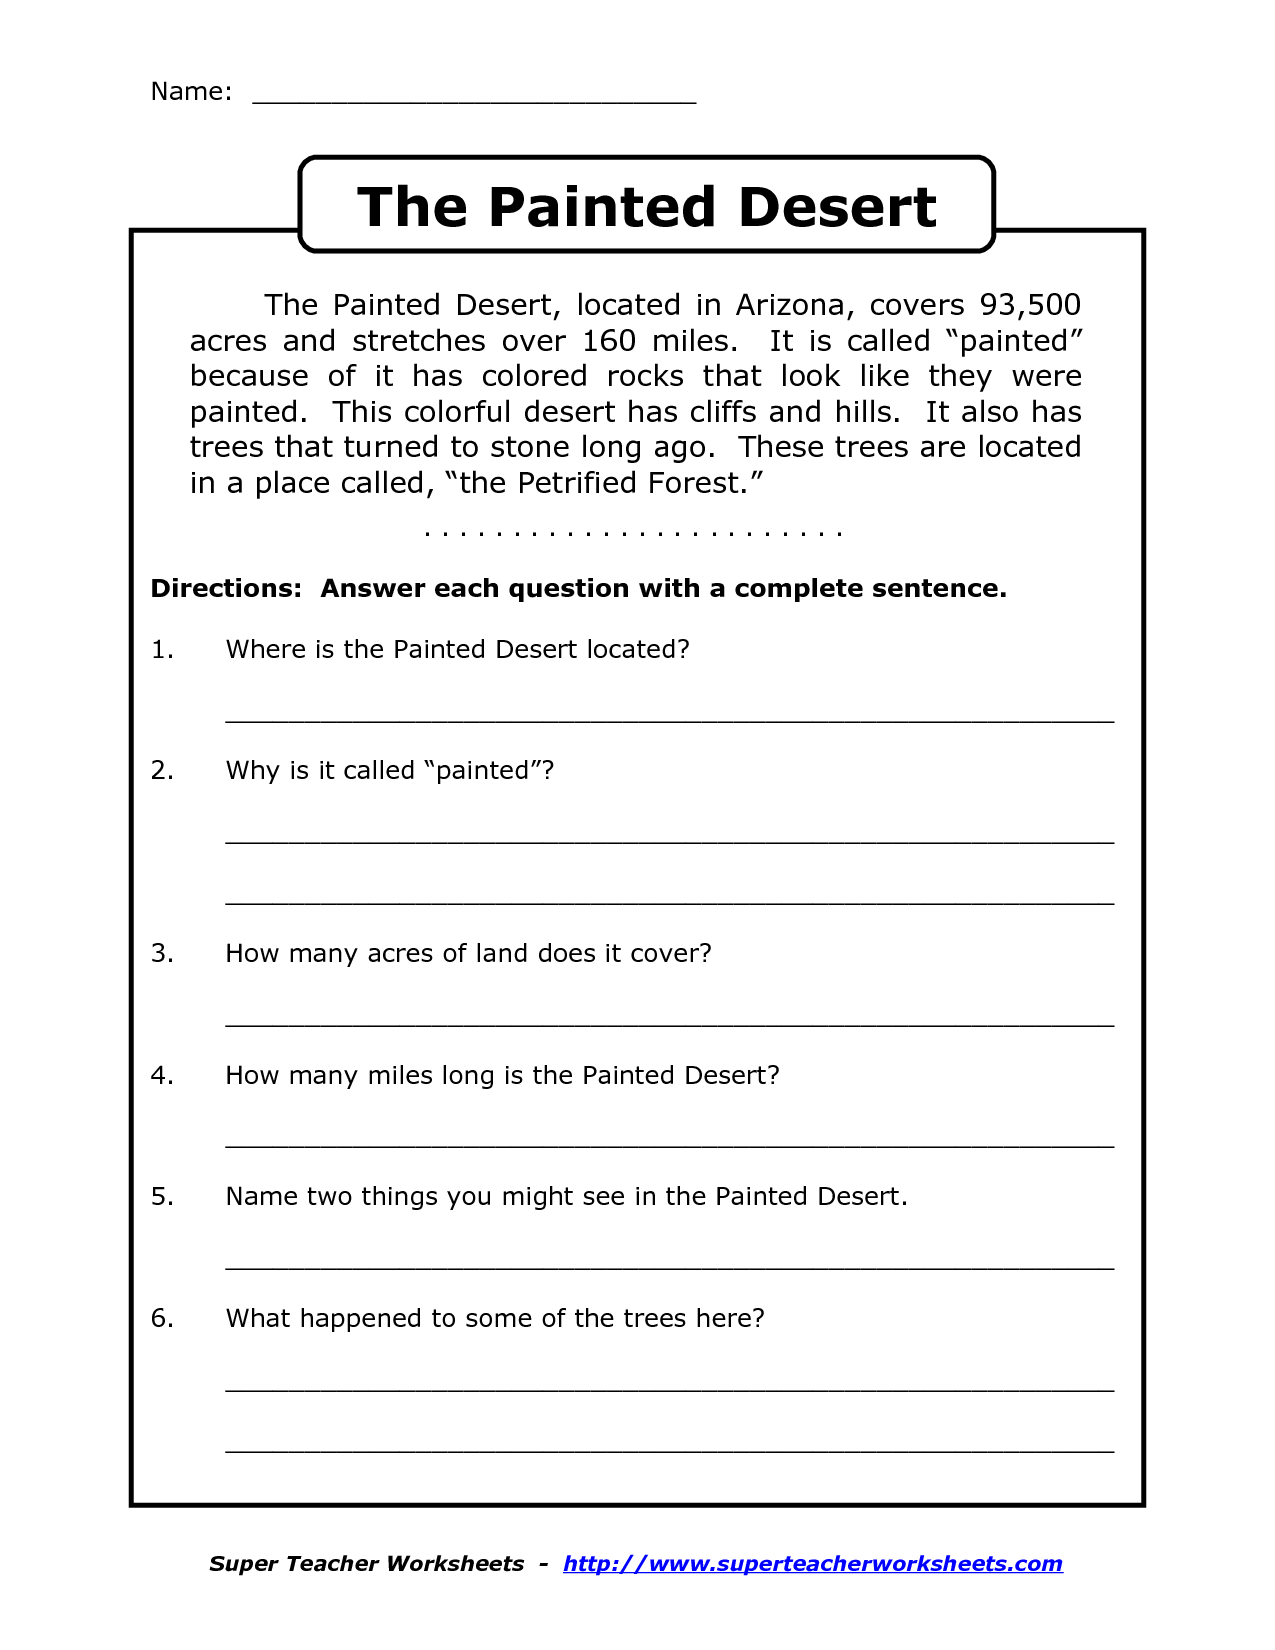 Worksheets Readings Worksheets Printables worksheets free printable comprehension for grade 3 7 best images of reading worksheets